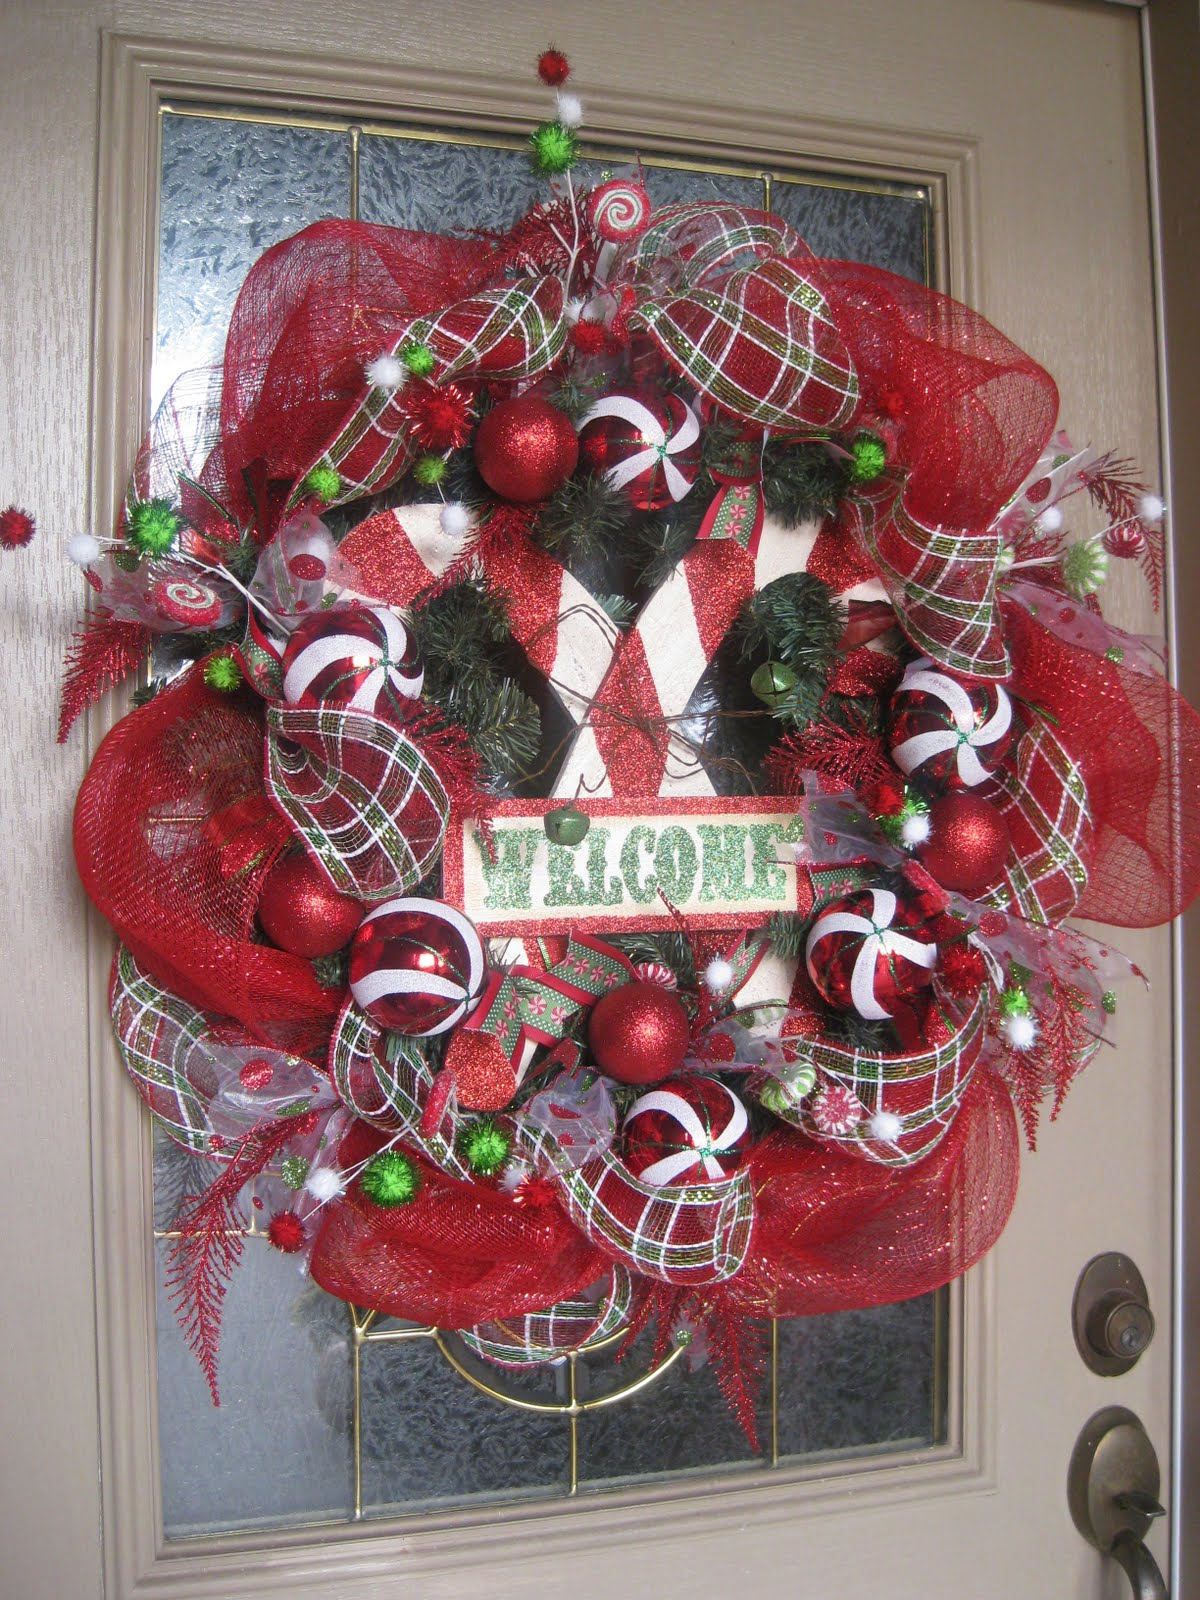 Kristens Creations Candy Cane Mesh Wreath